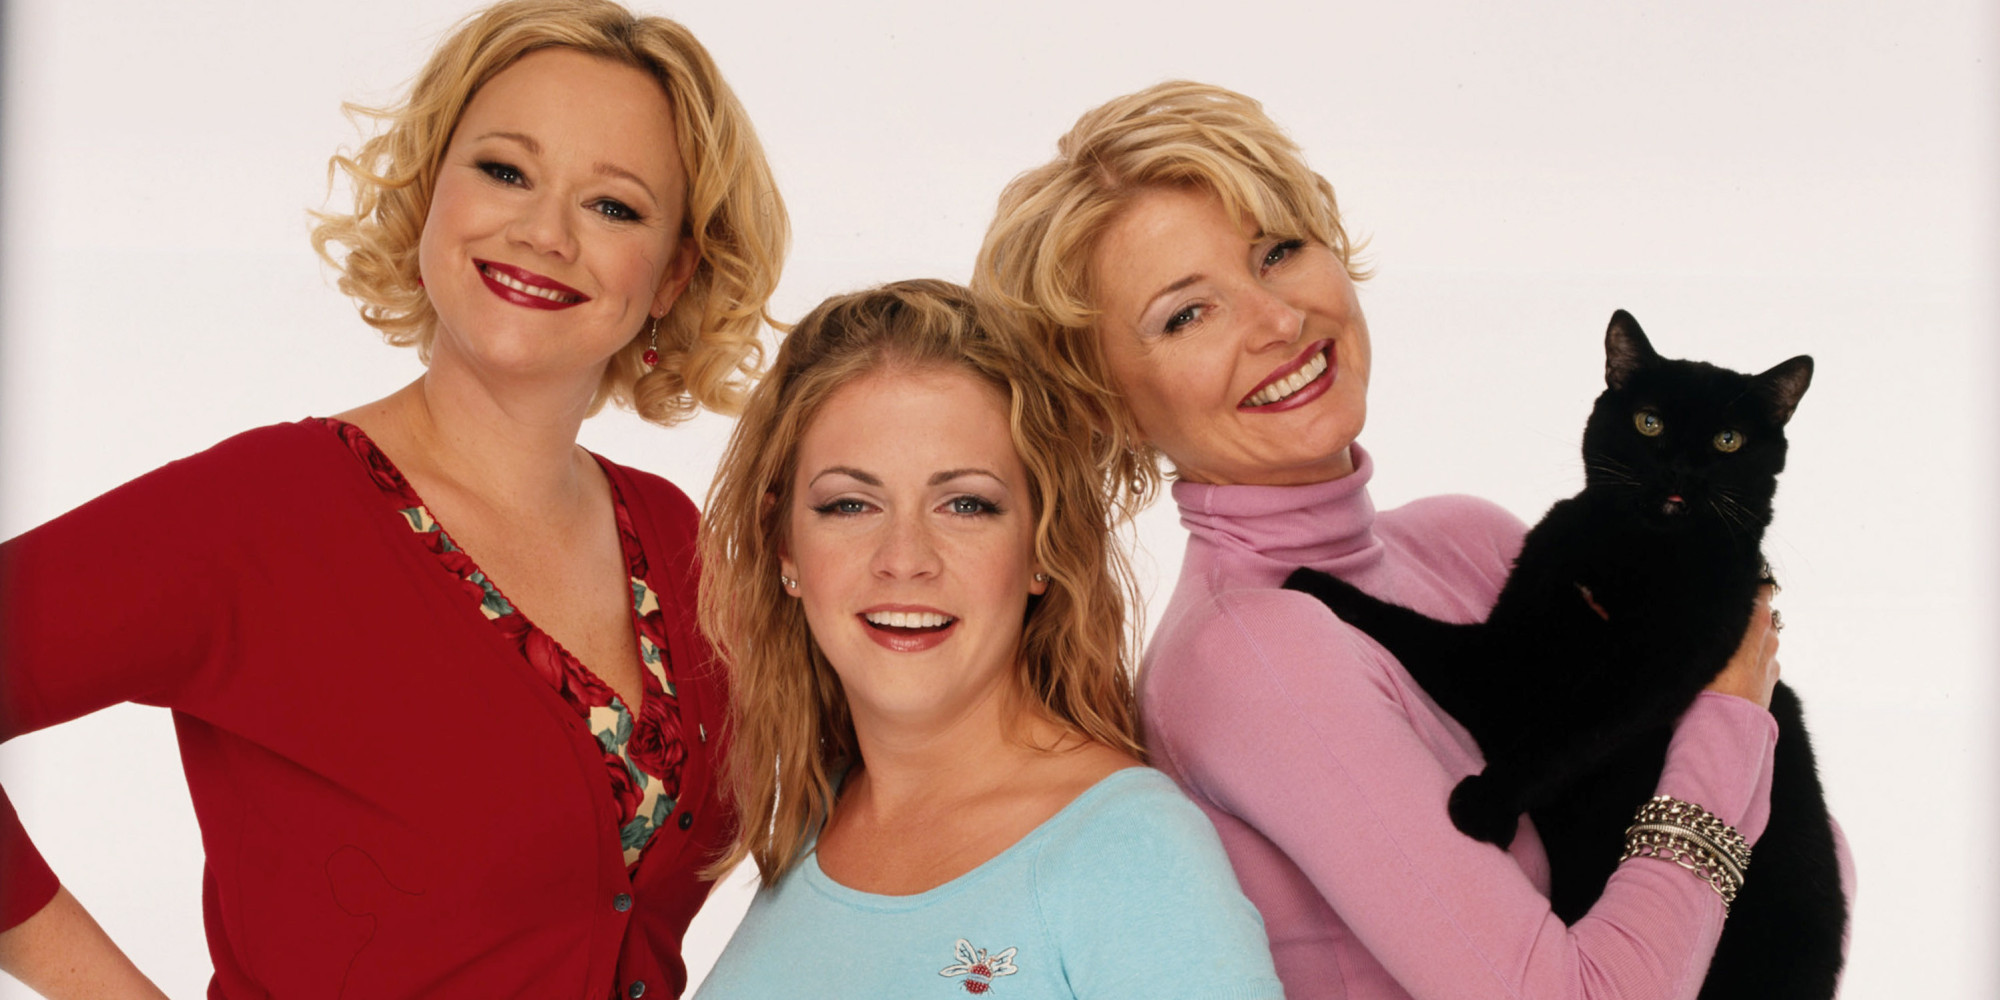 http://i.huffpost.com/gen/1568503/images/o-SABRINA-THE-TEENAGE-WITCH-facebook.jpg